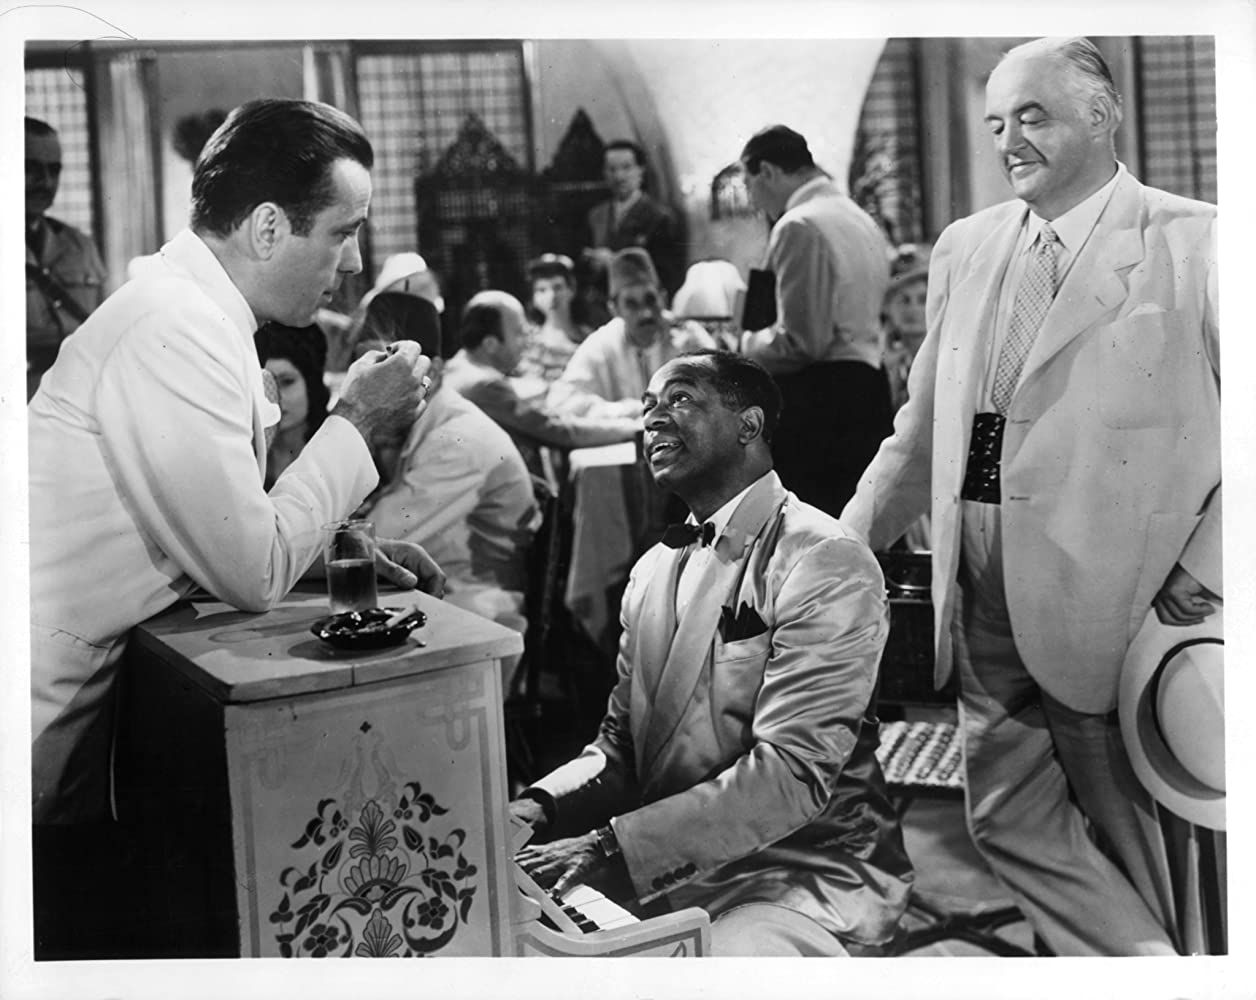 Humphrey Bogart, Sydney Greenstreet, and Dooley Wilson in Casablanca (1942)